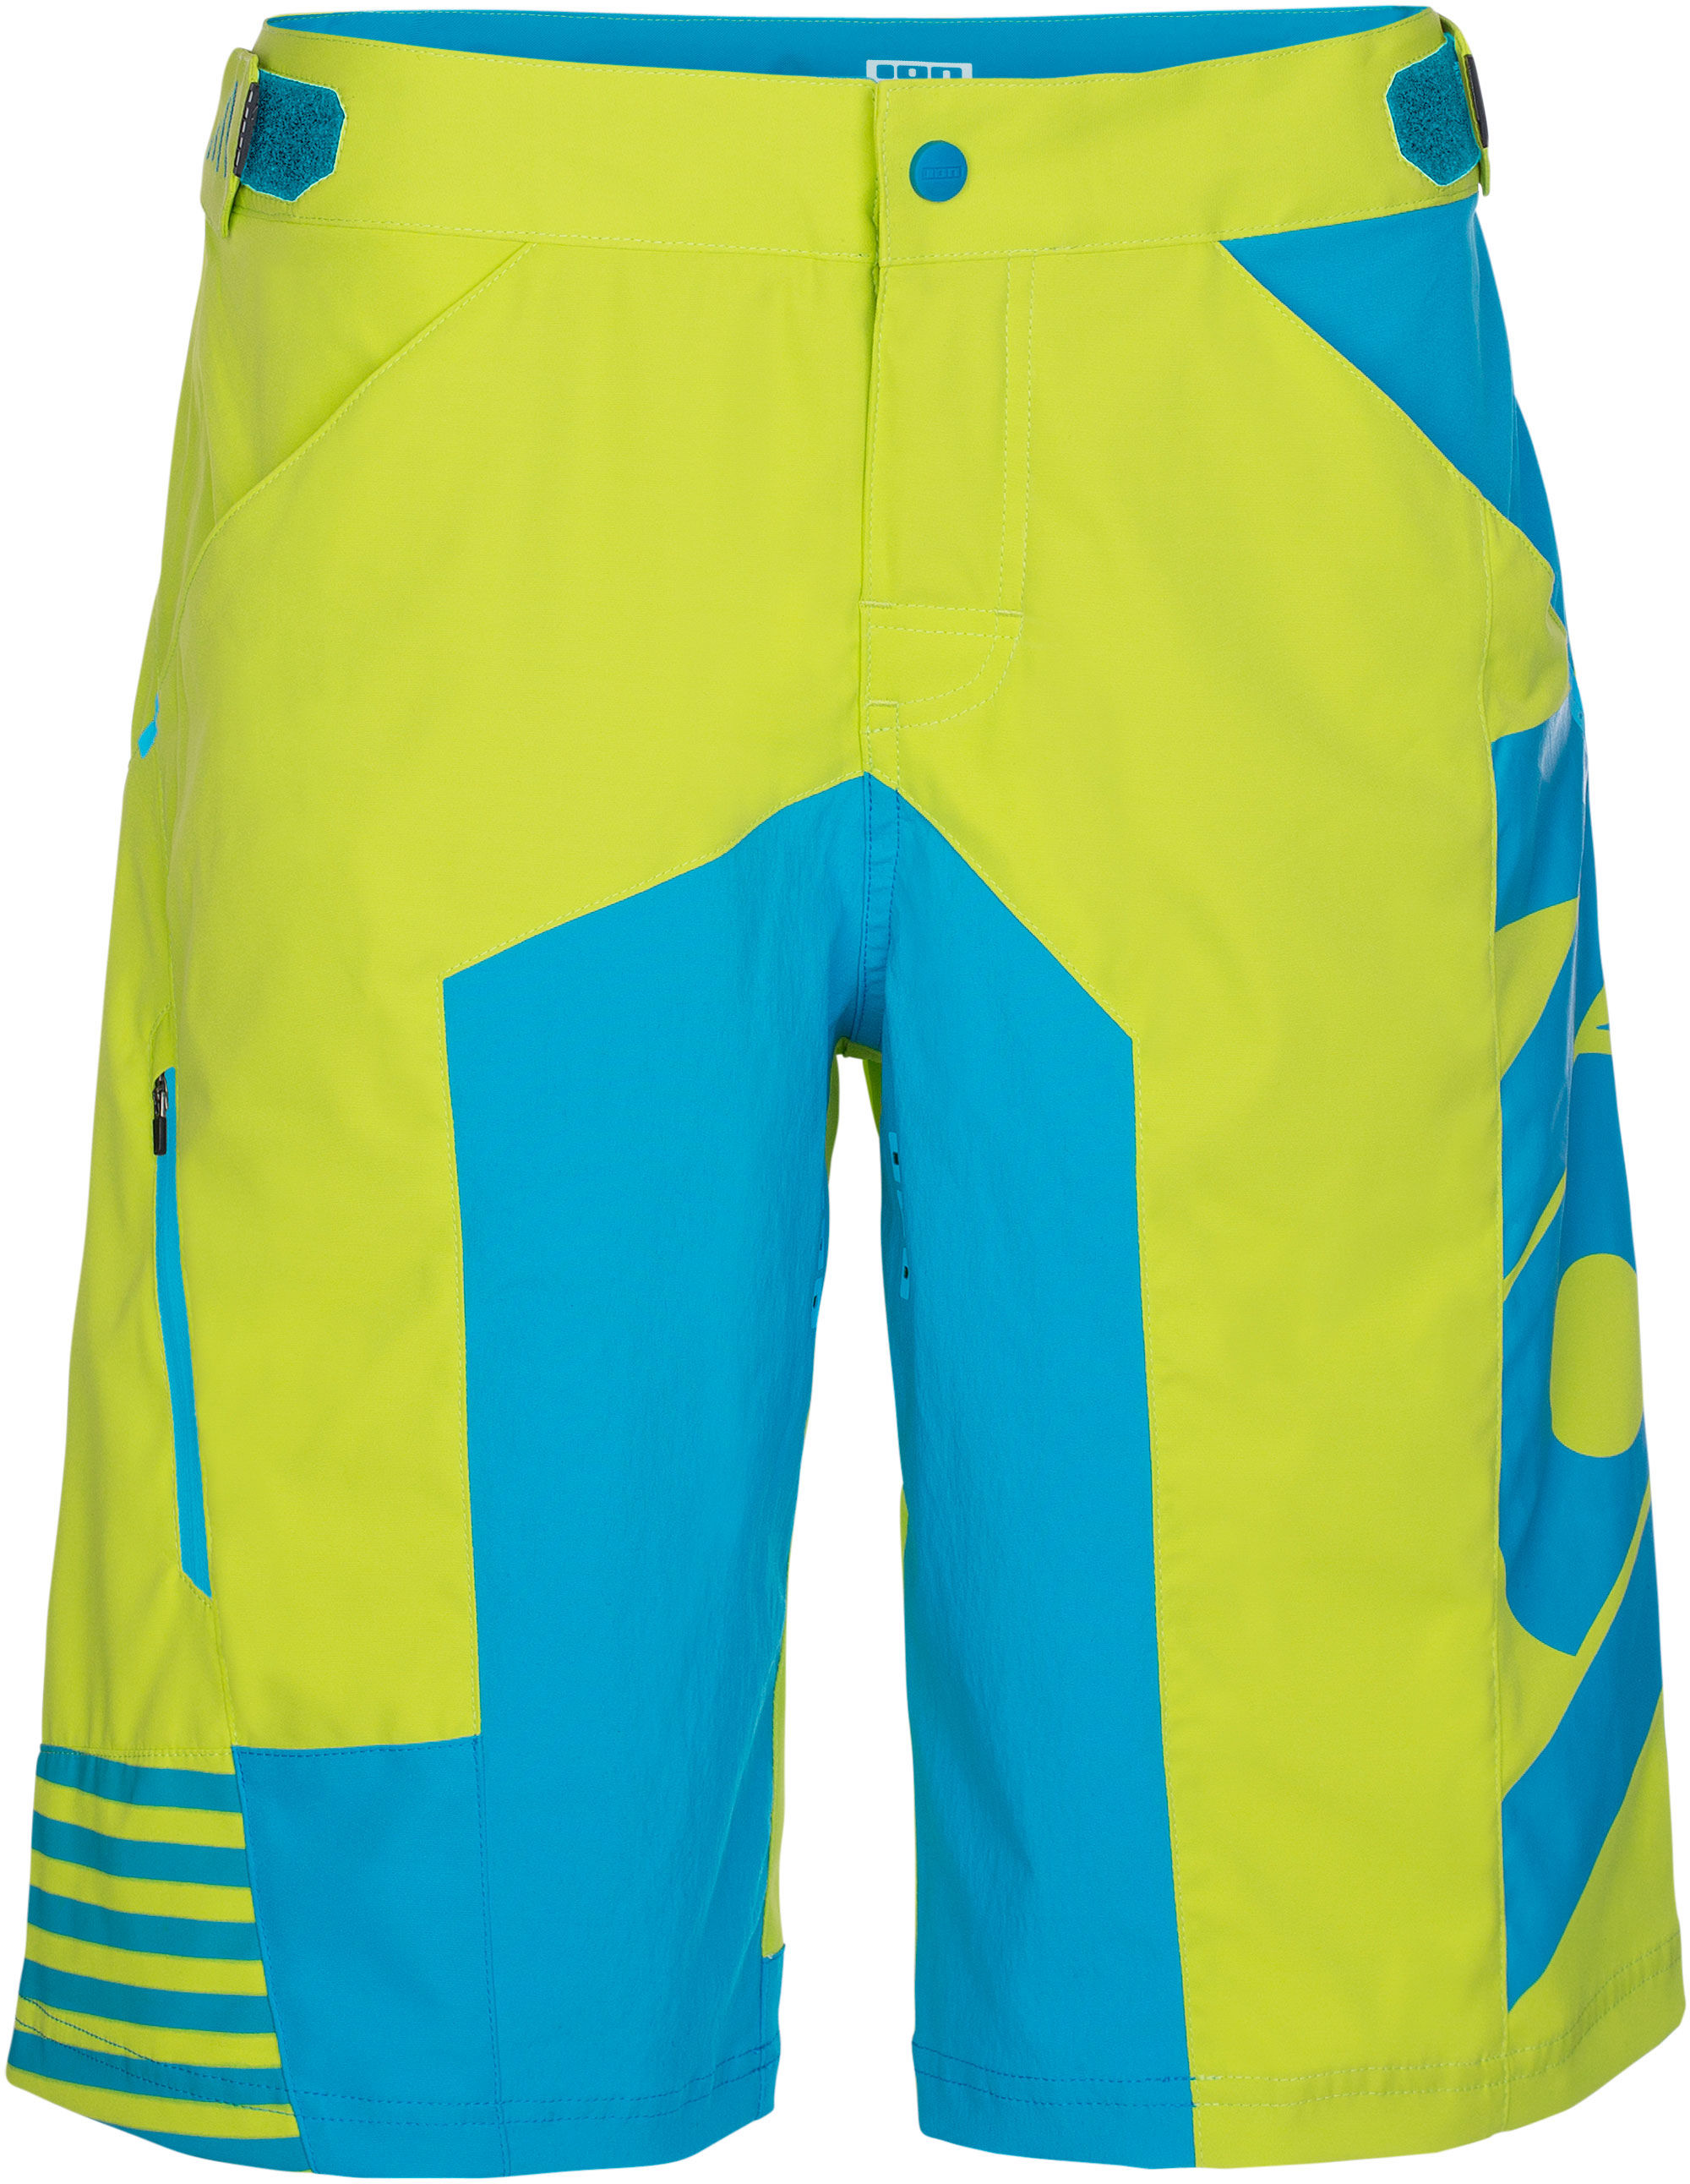 ion bike short